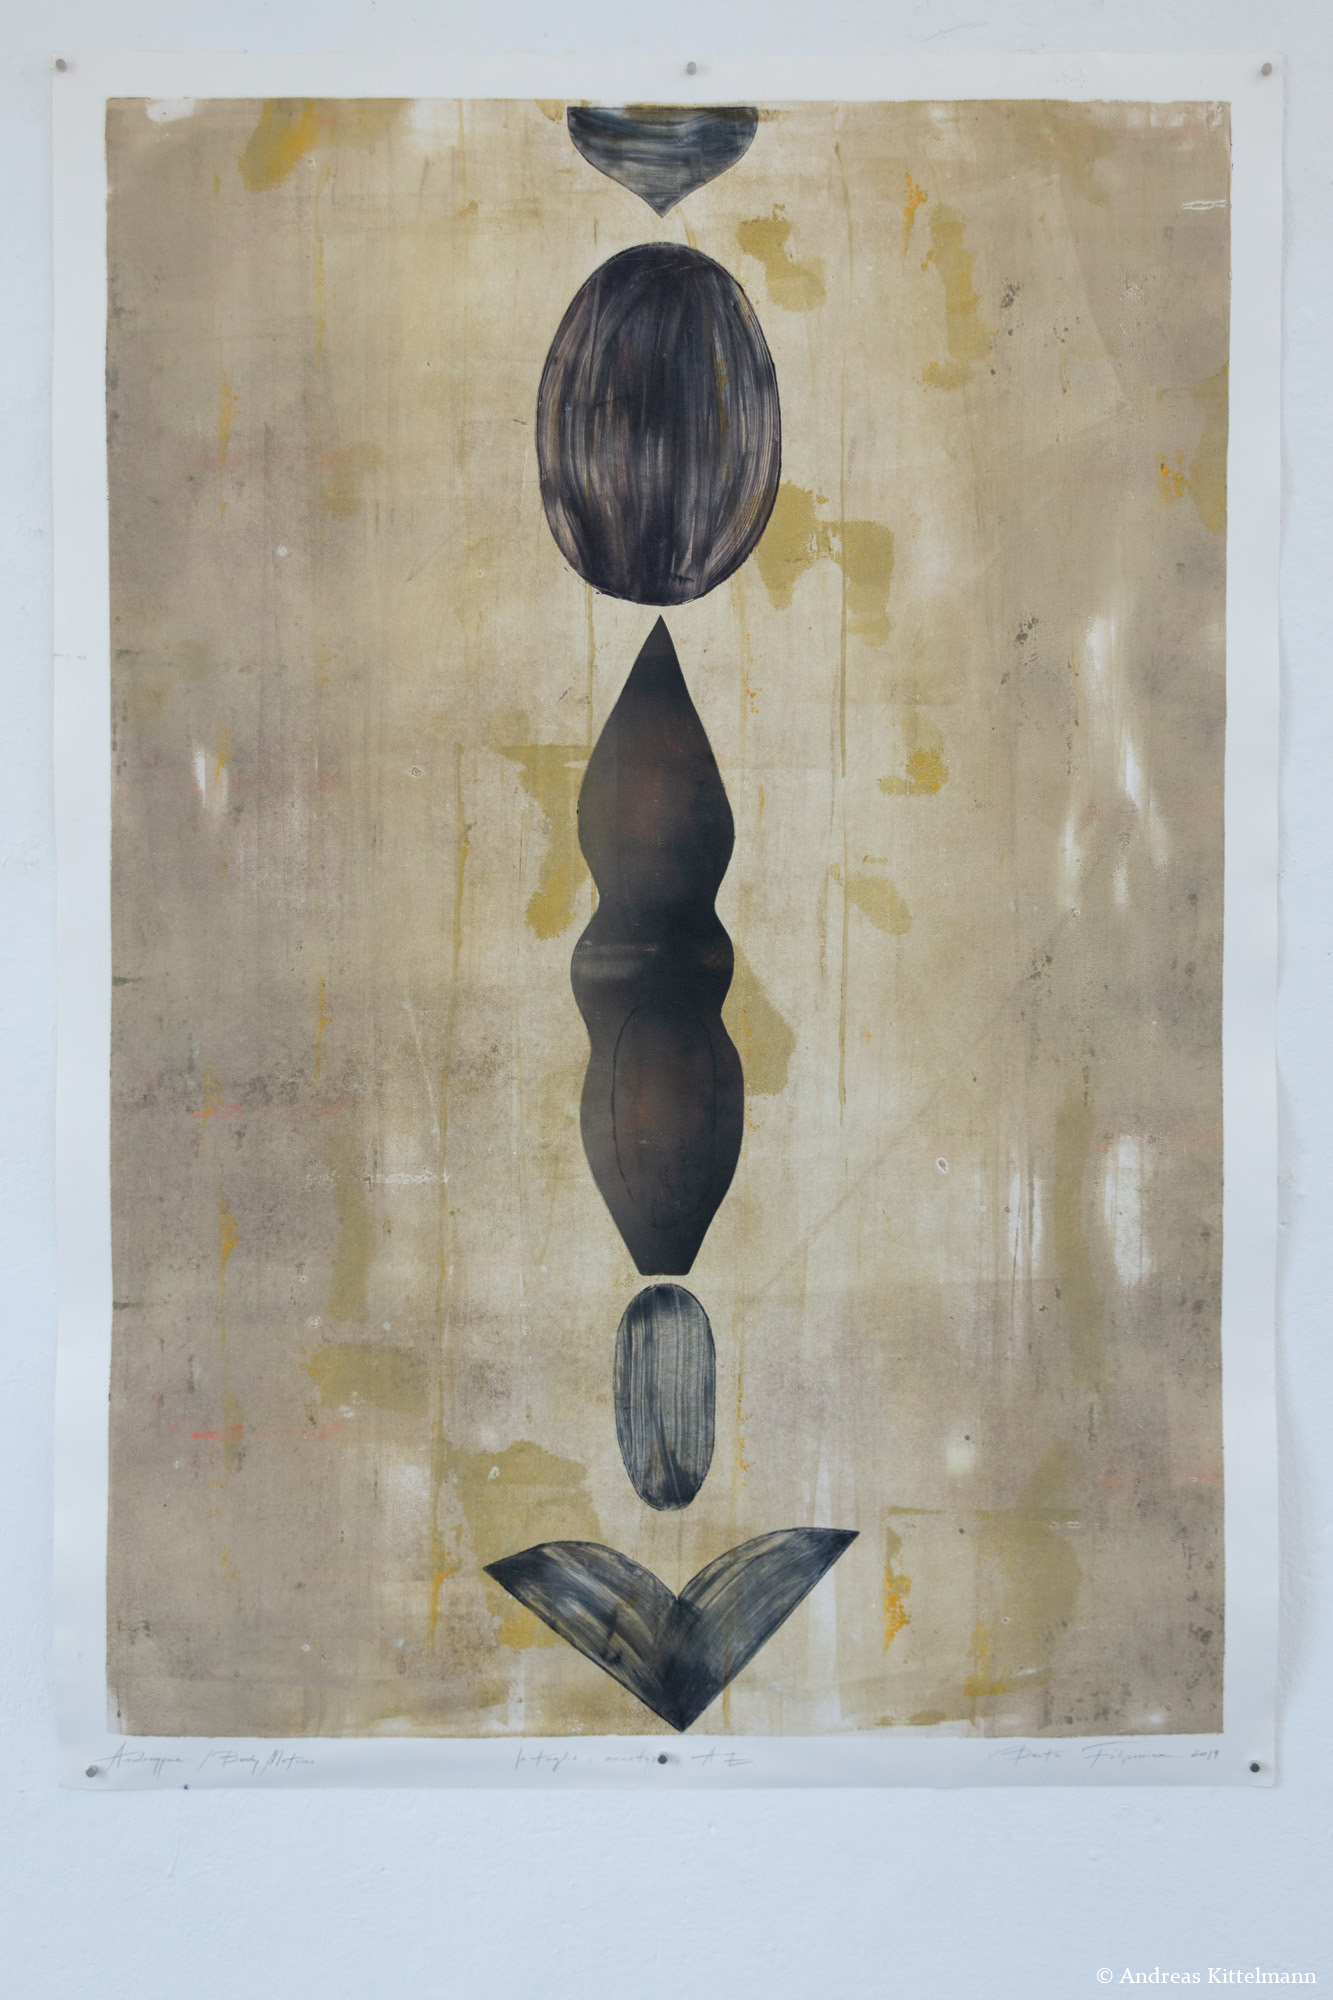 Beata Filipowicz, Androgyne, 2019, Intaglio: monotype, Author's Edition, 104 x 74 cm, aus der Serie BODY MATRICES